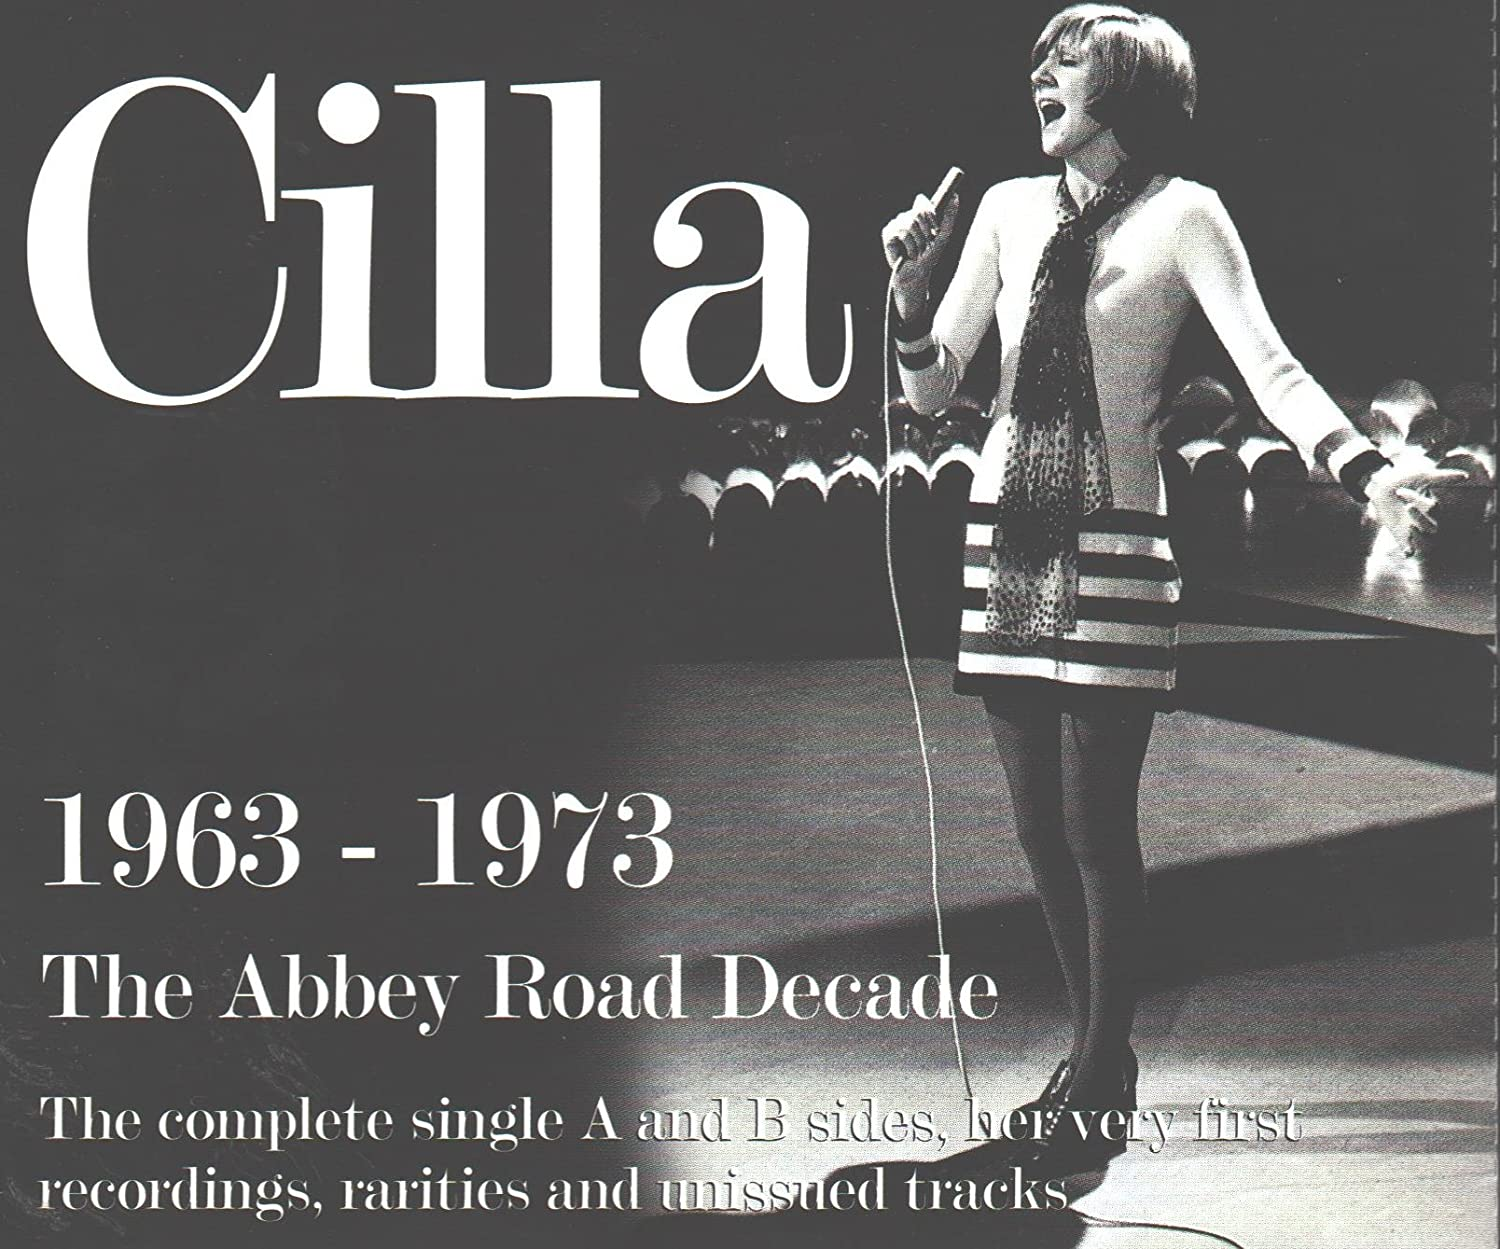 Abby Road Decade 1963-1973